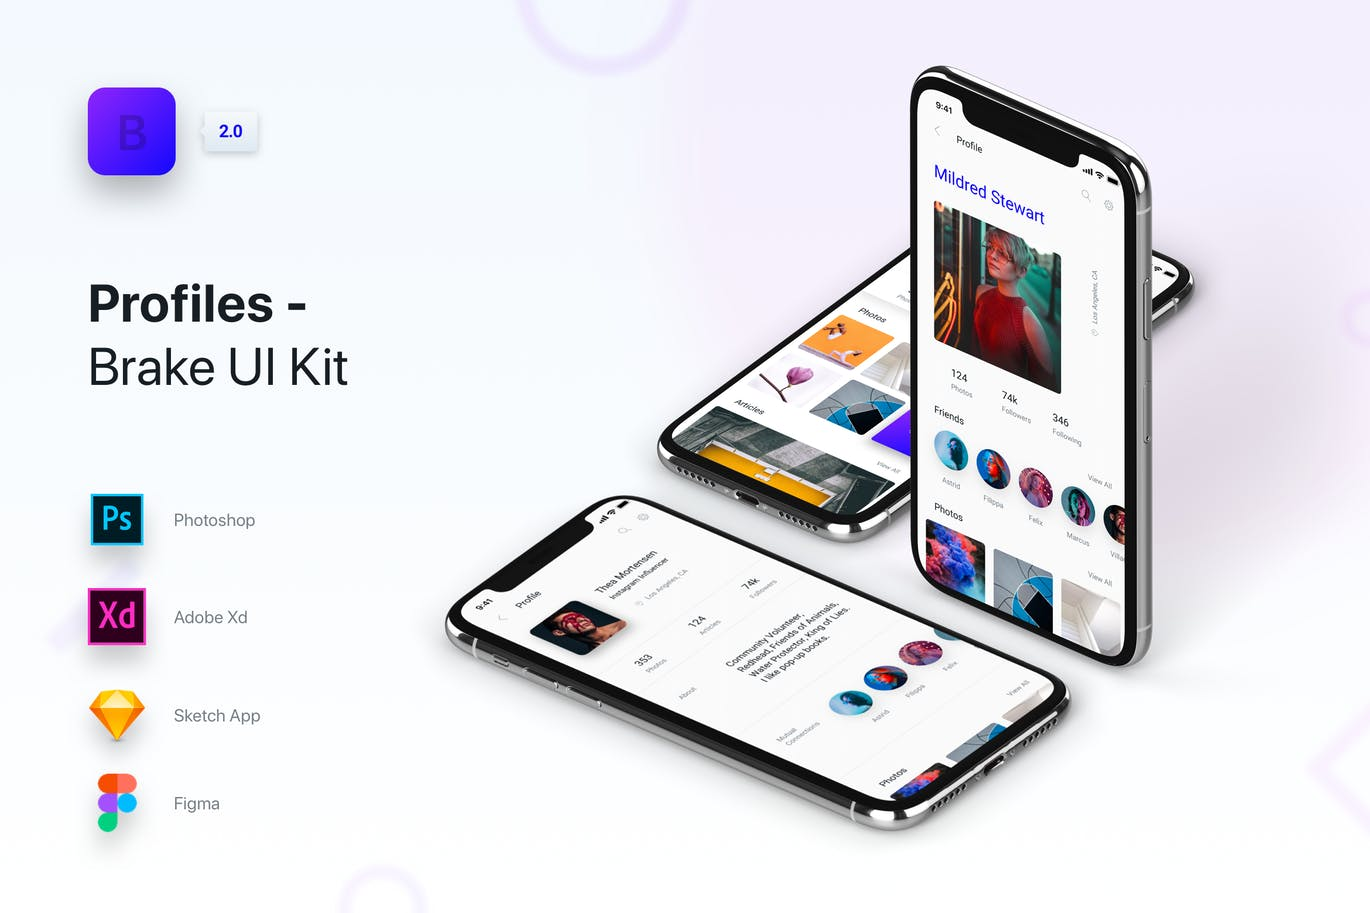 Brake UI Kit 2 0 - Profiles by panoplystore on Envato Elements